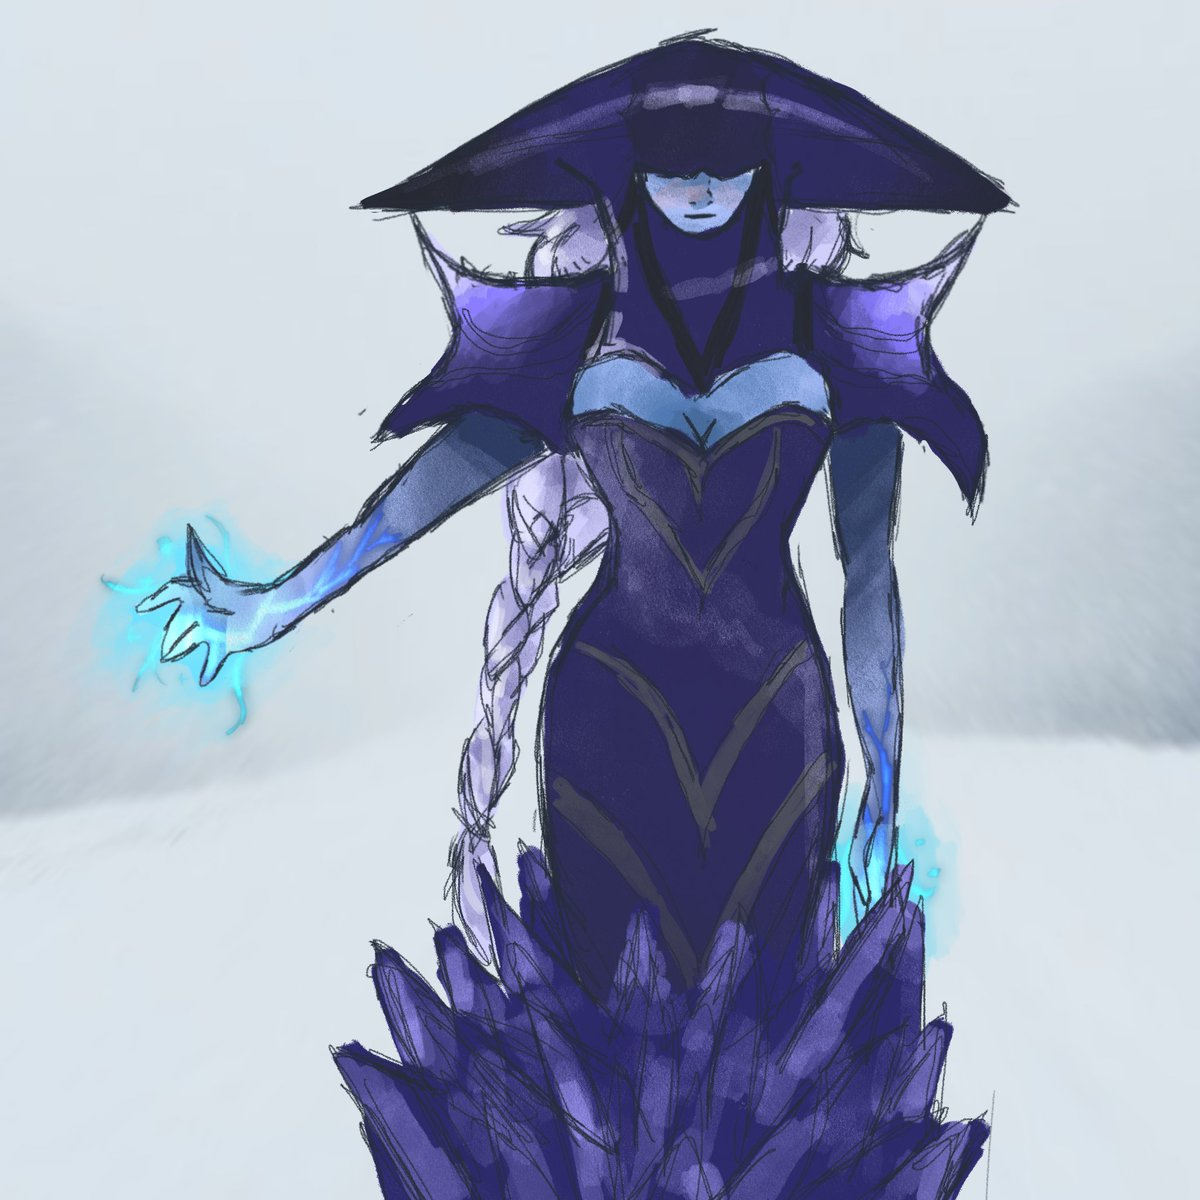 lissandra, the ice witch  tags:  #leagueoflegends #leagueoflegendsart #leagueoflegendsfanart #lol #leagueoflegendsmemes #riotgames #leagueoflegendscosplay #leagueoflegendsmeme #league #leagueoflegendsfunny #art #leagueoflegendstroll #lolart #fanart #dota #leagueoflegendstr #gamerpic.twitter.com/8nIo2OTZ5G